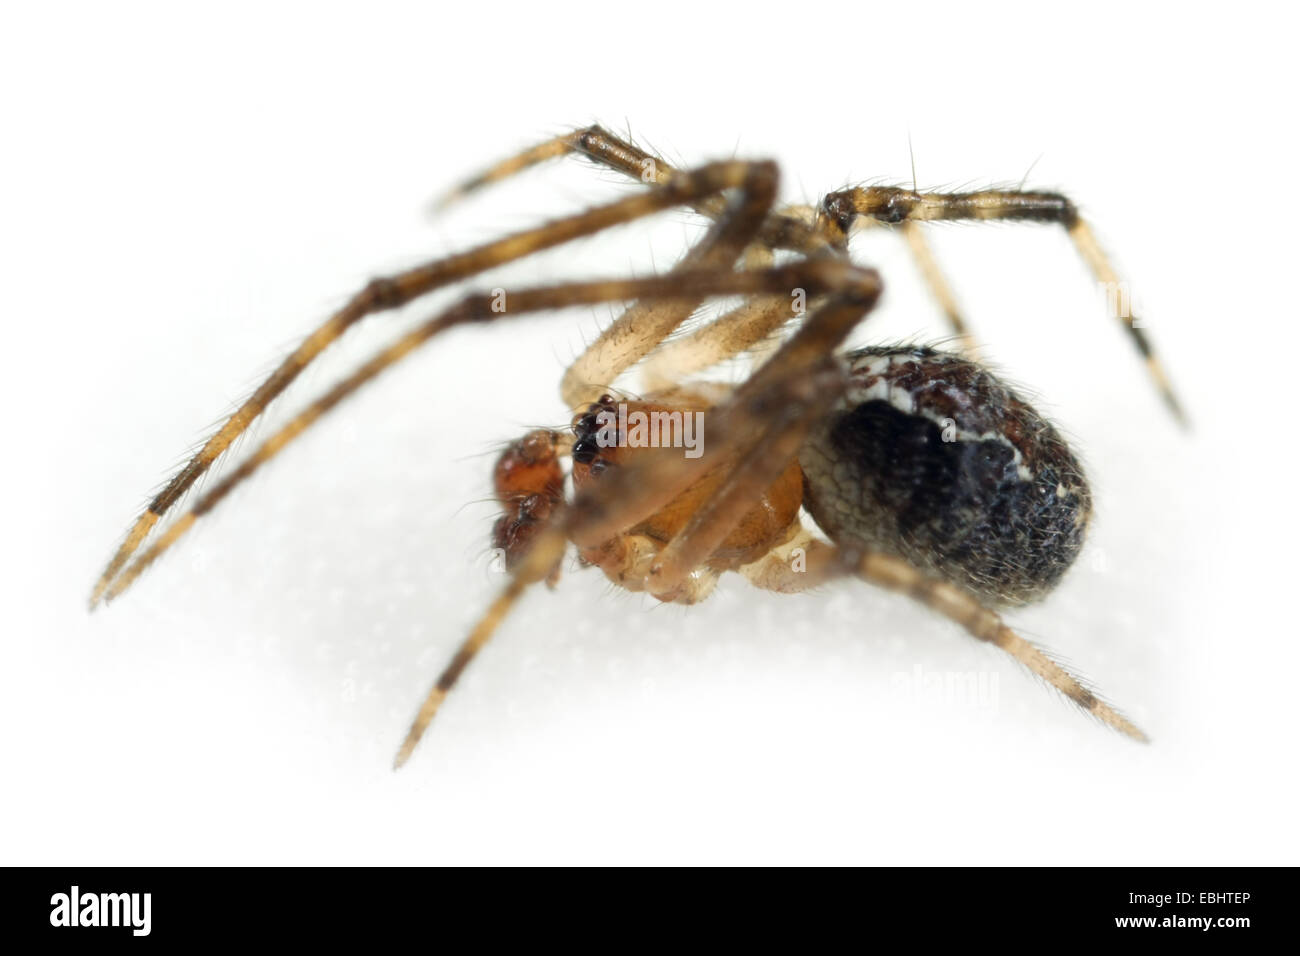 A male Chobham Comb-foot spider (Theridion pinastri), on a white background, part of the family Theridiidae - Comb - Stock Image